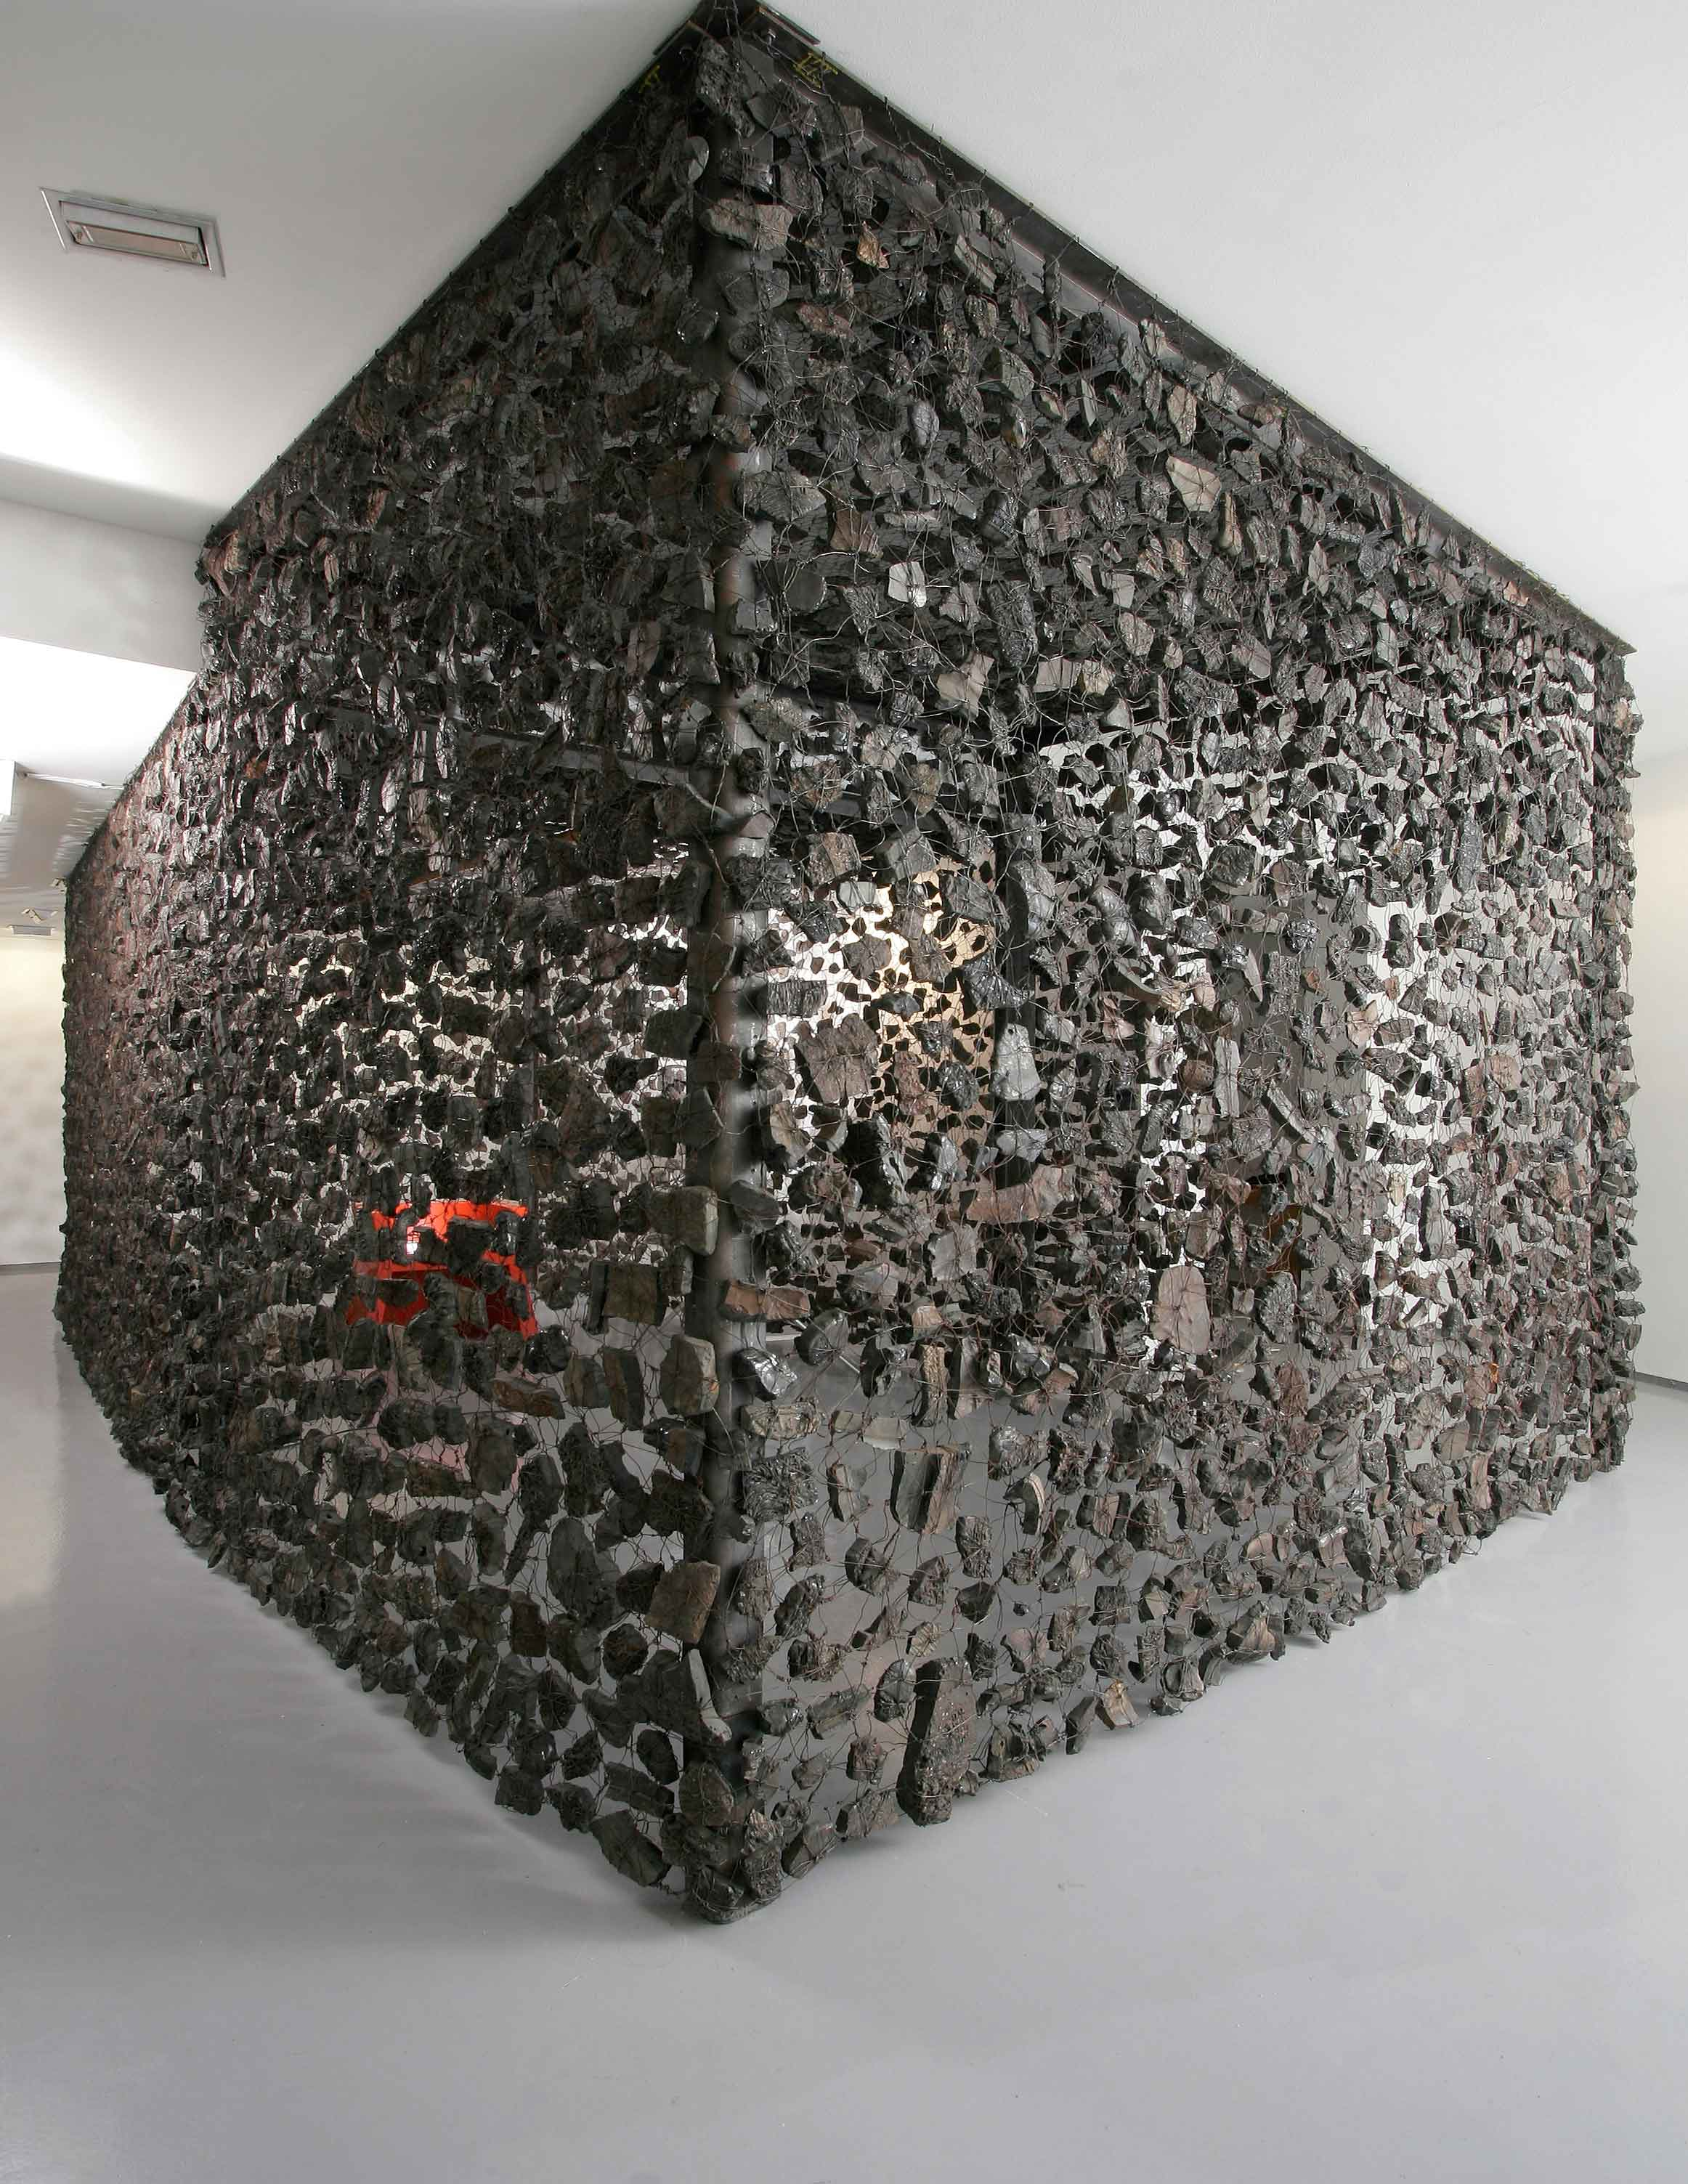 11.-Always-watch-what-the-hands-do,2007,-280-x-600-x-320-cm,-metal-structure,wire,mine-debris,-seat-painted-steel.jpg